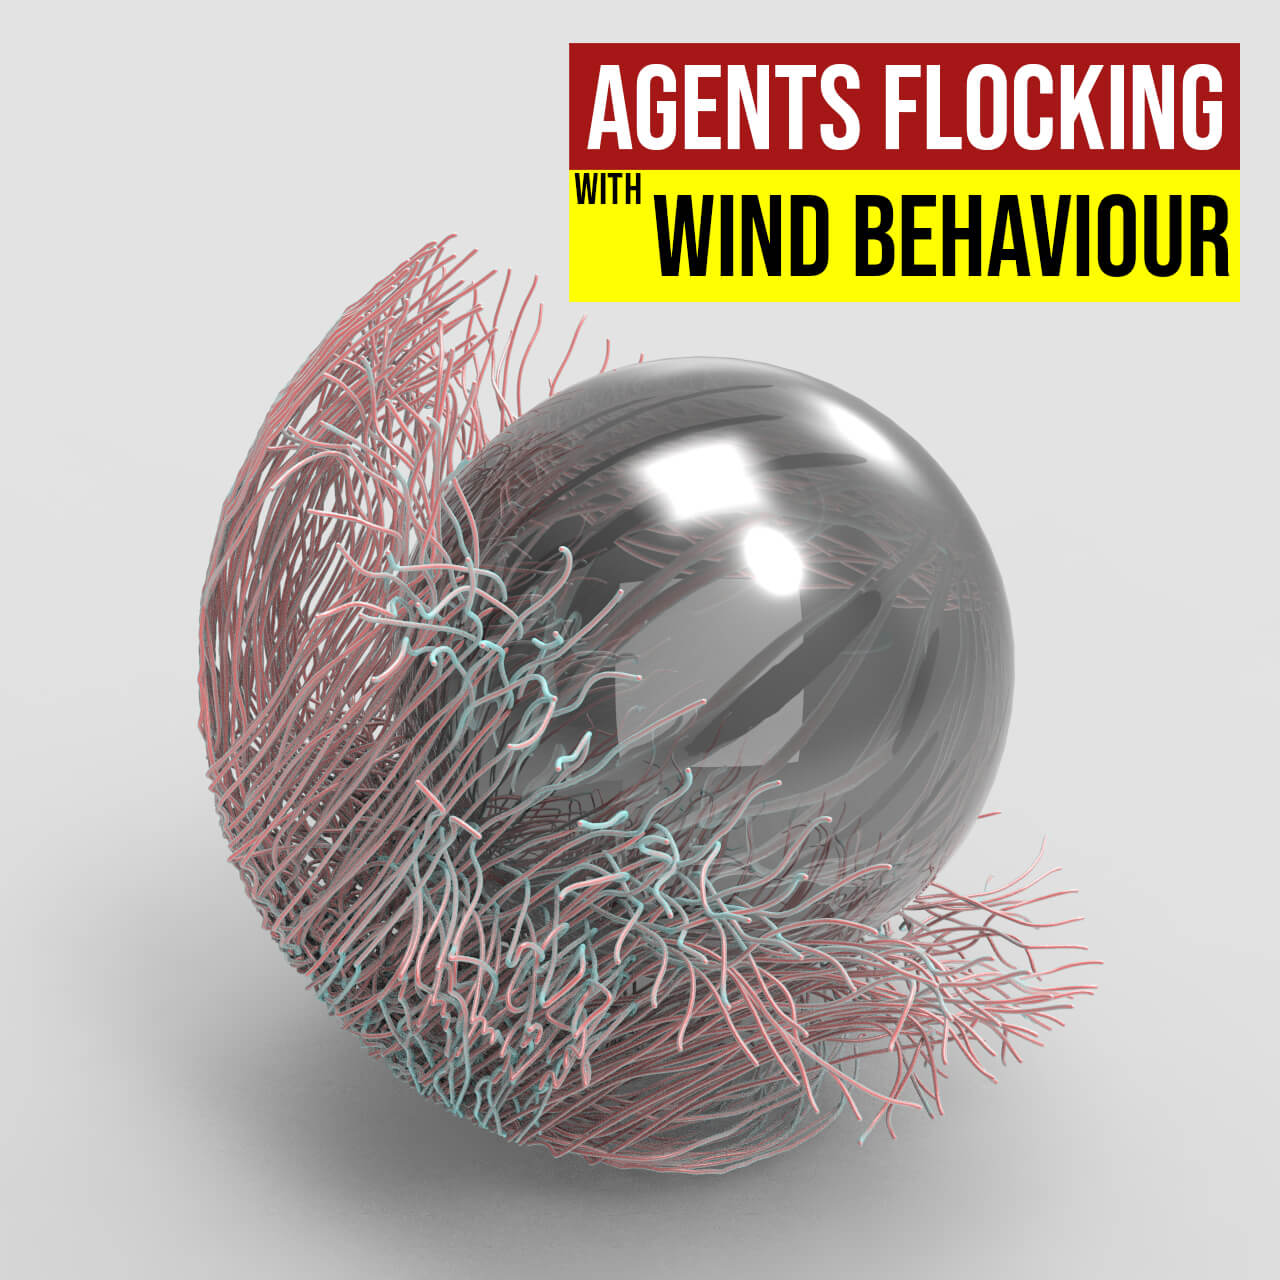 Agent flocking wind behaviour1280